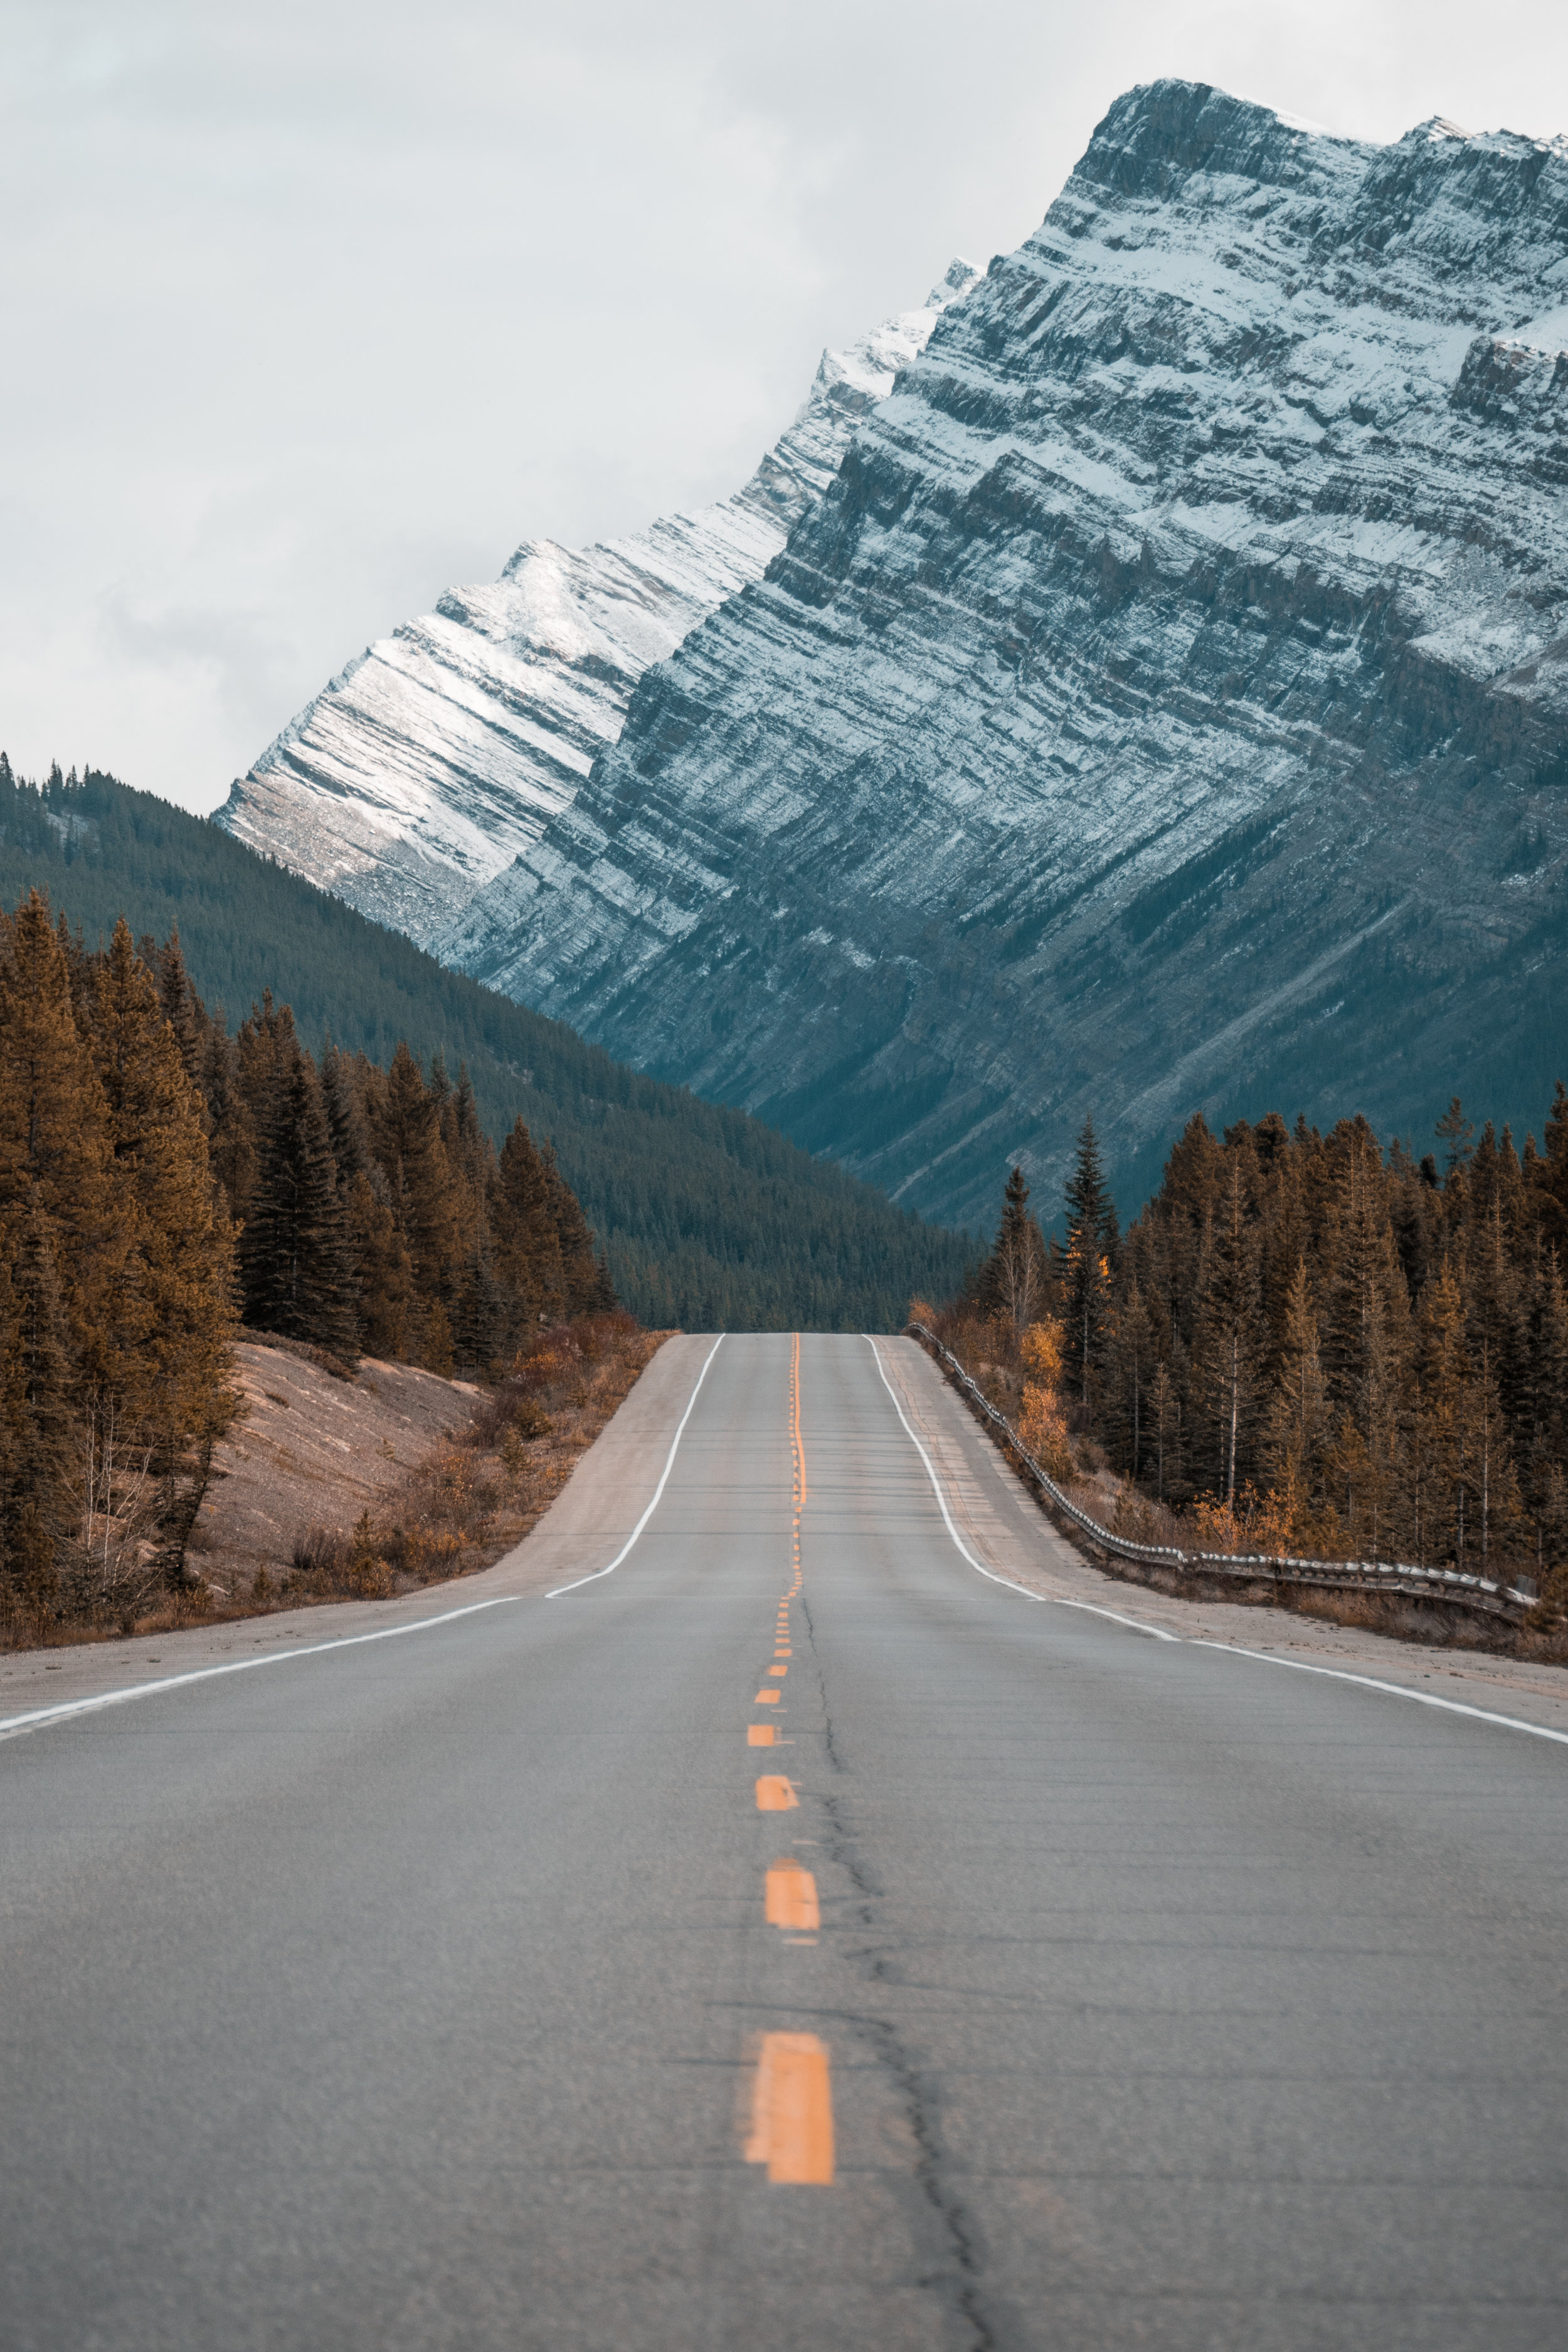 long straight road leading into the foot of a mountain